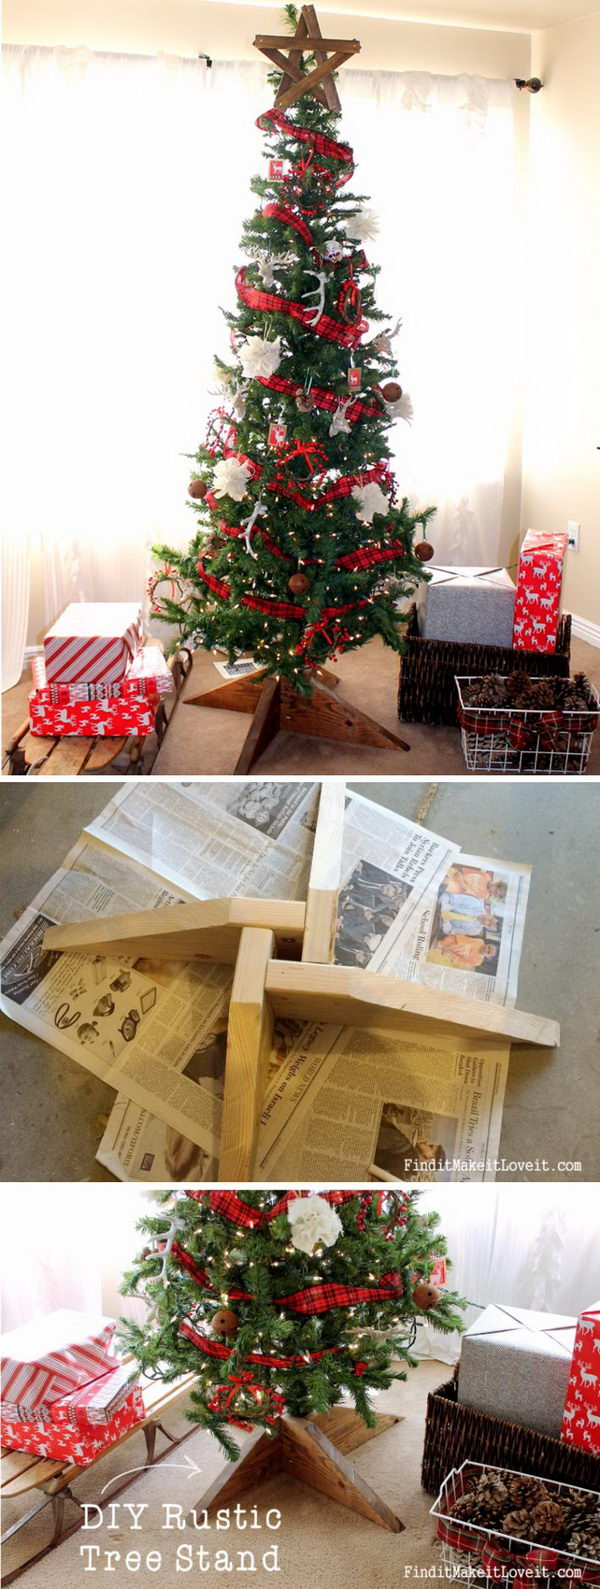 DIY Rustic Wood Tree Stand